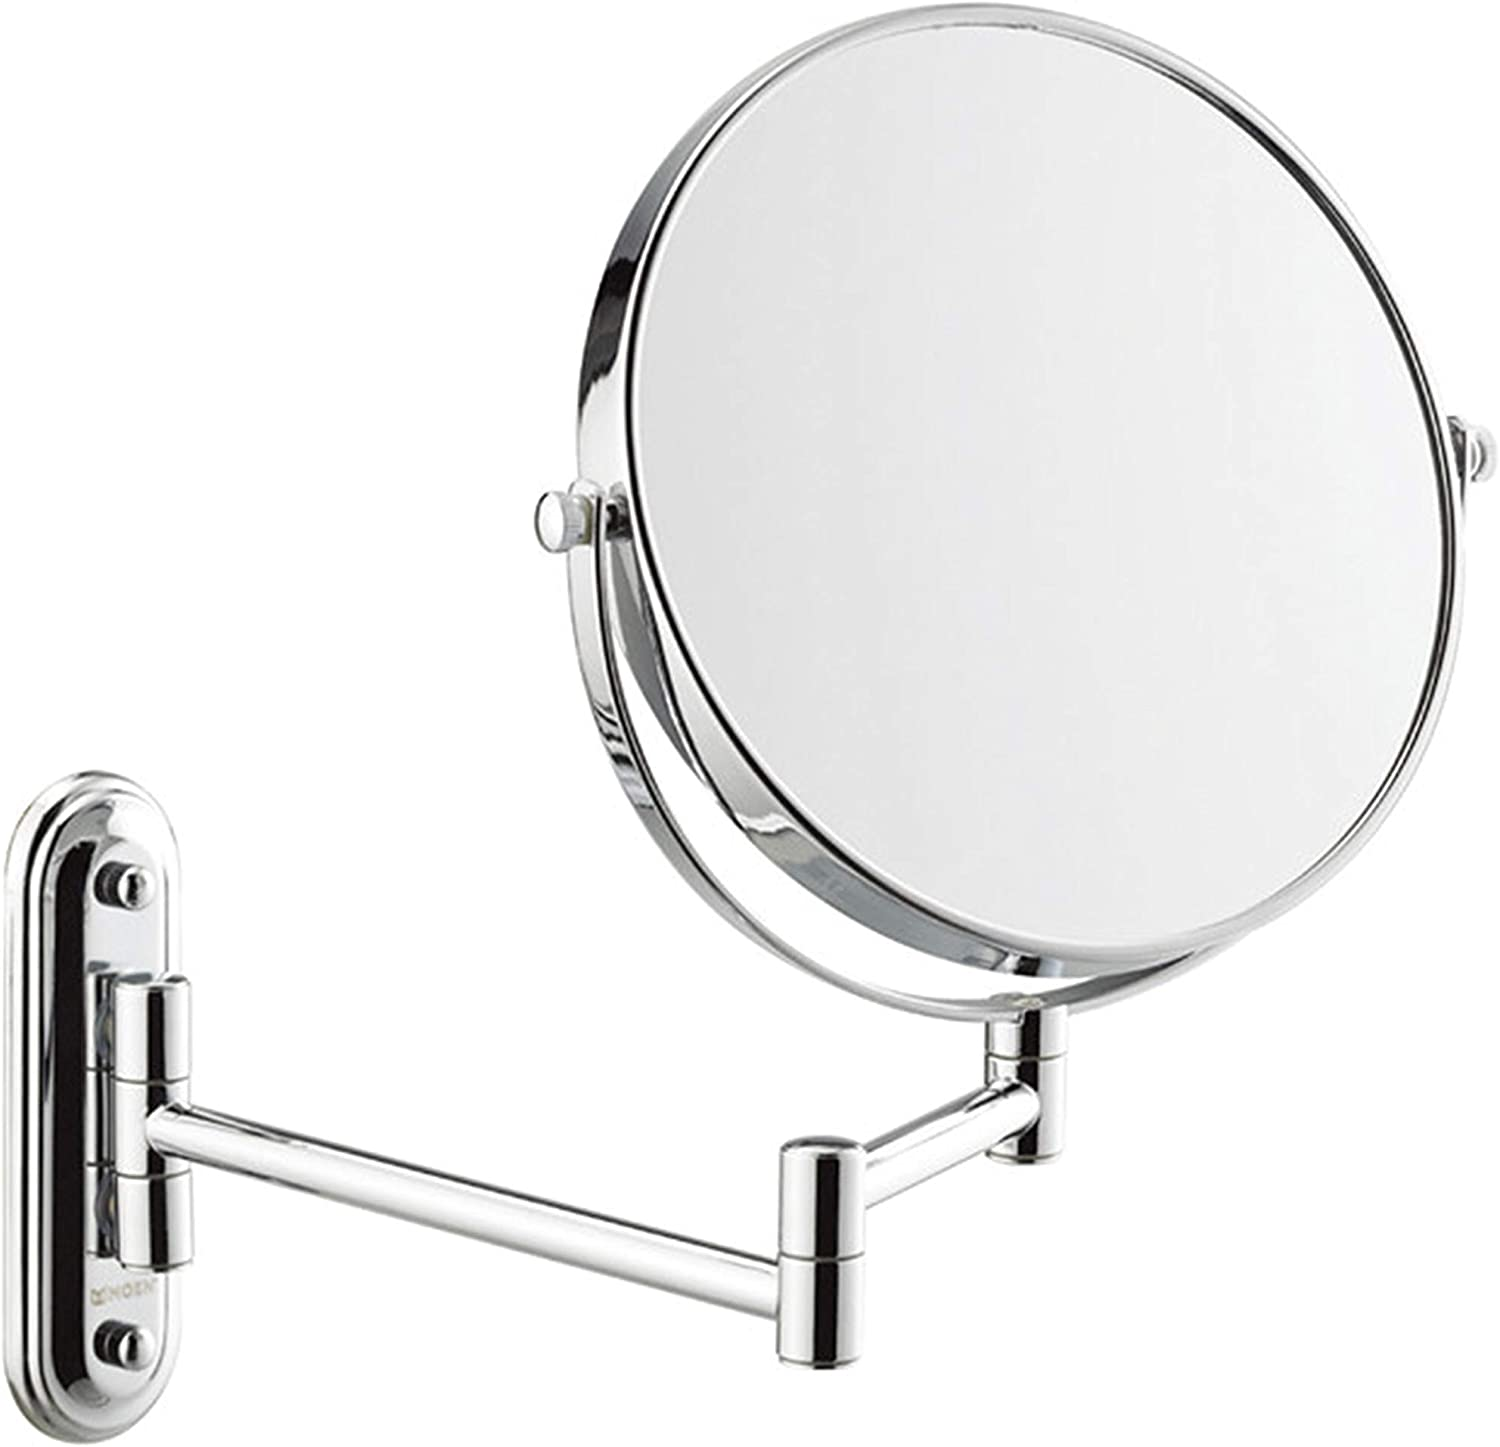 Punch Free Makeup Mirror Fold Telescopic Beauty Mirror Bathroom Dressing Mirror Double Sided Magnifier Pendant Move Round Mirror,6inch